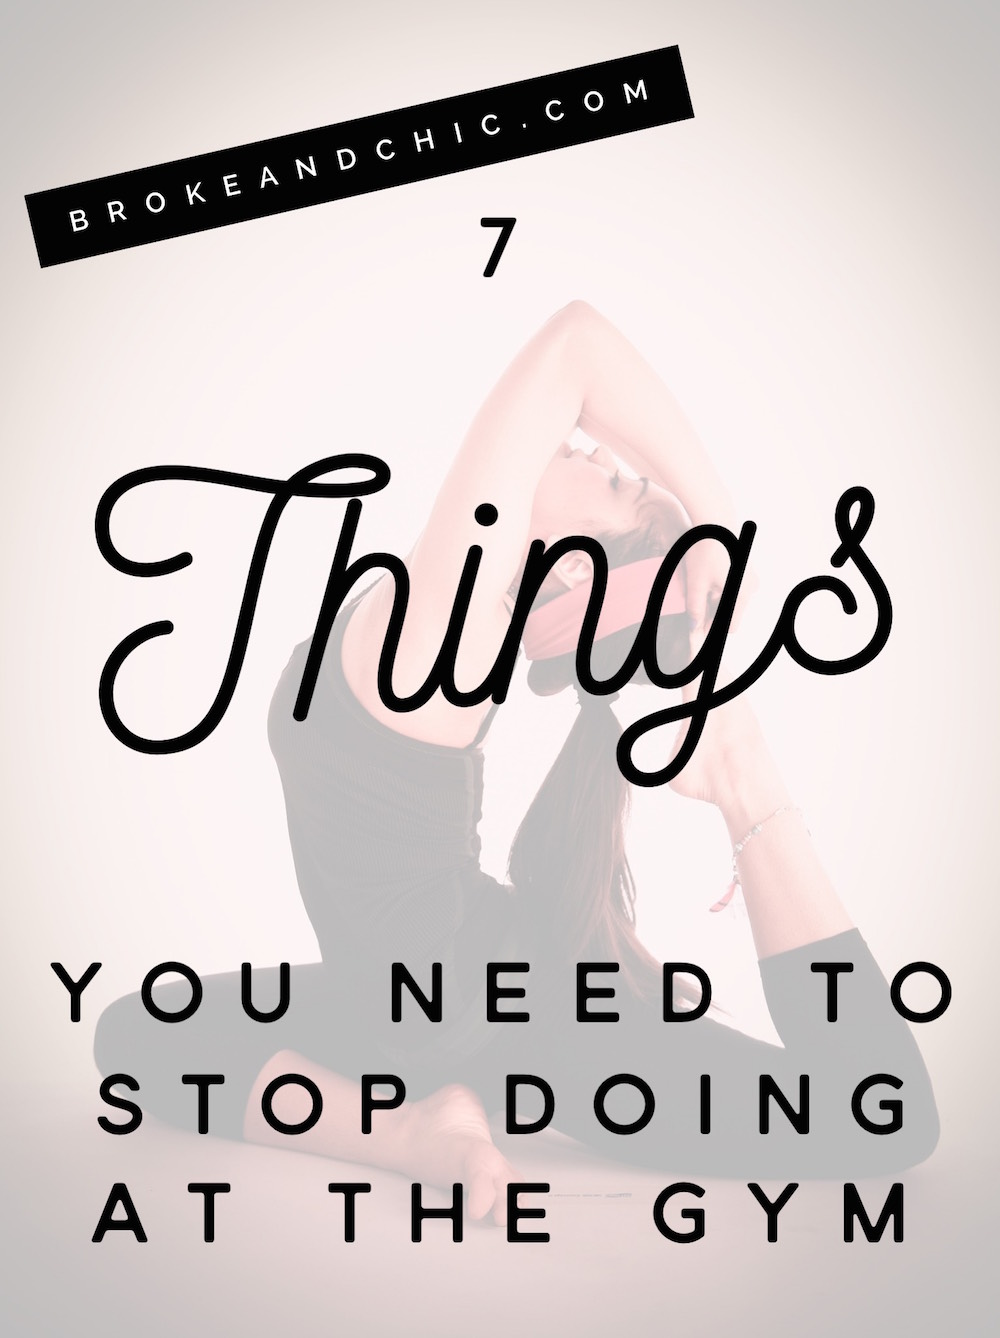 7 Things You Need to Stop Doing at The Gym // www.brokeandchic.com